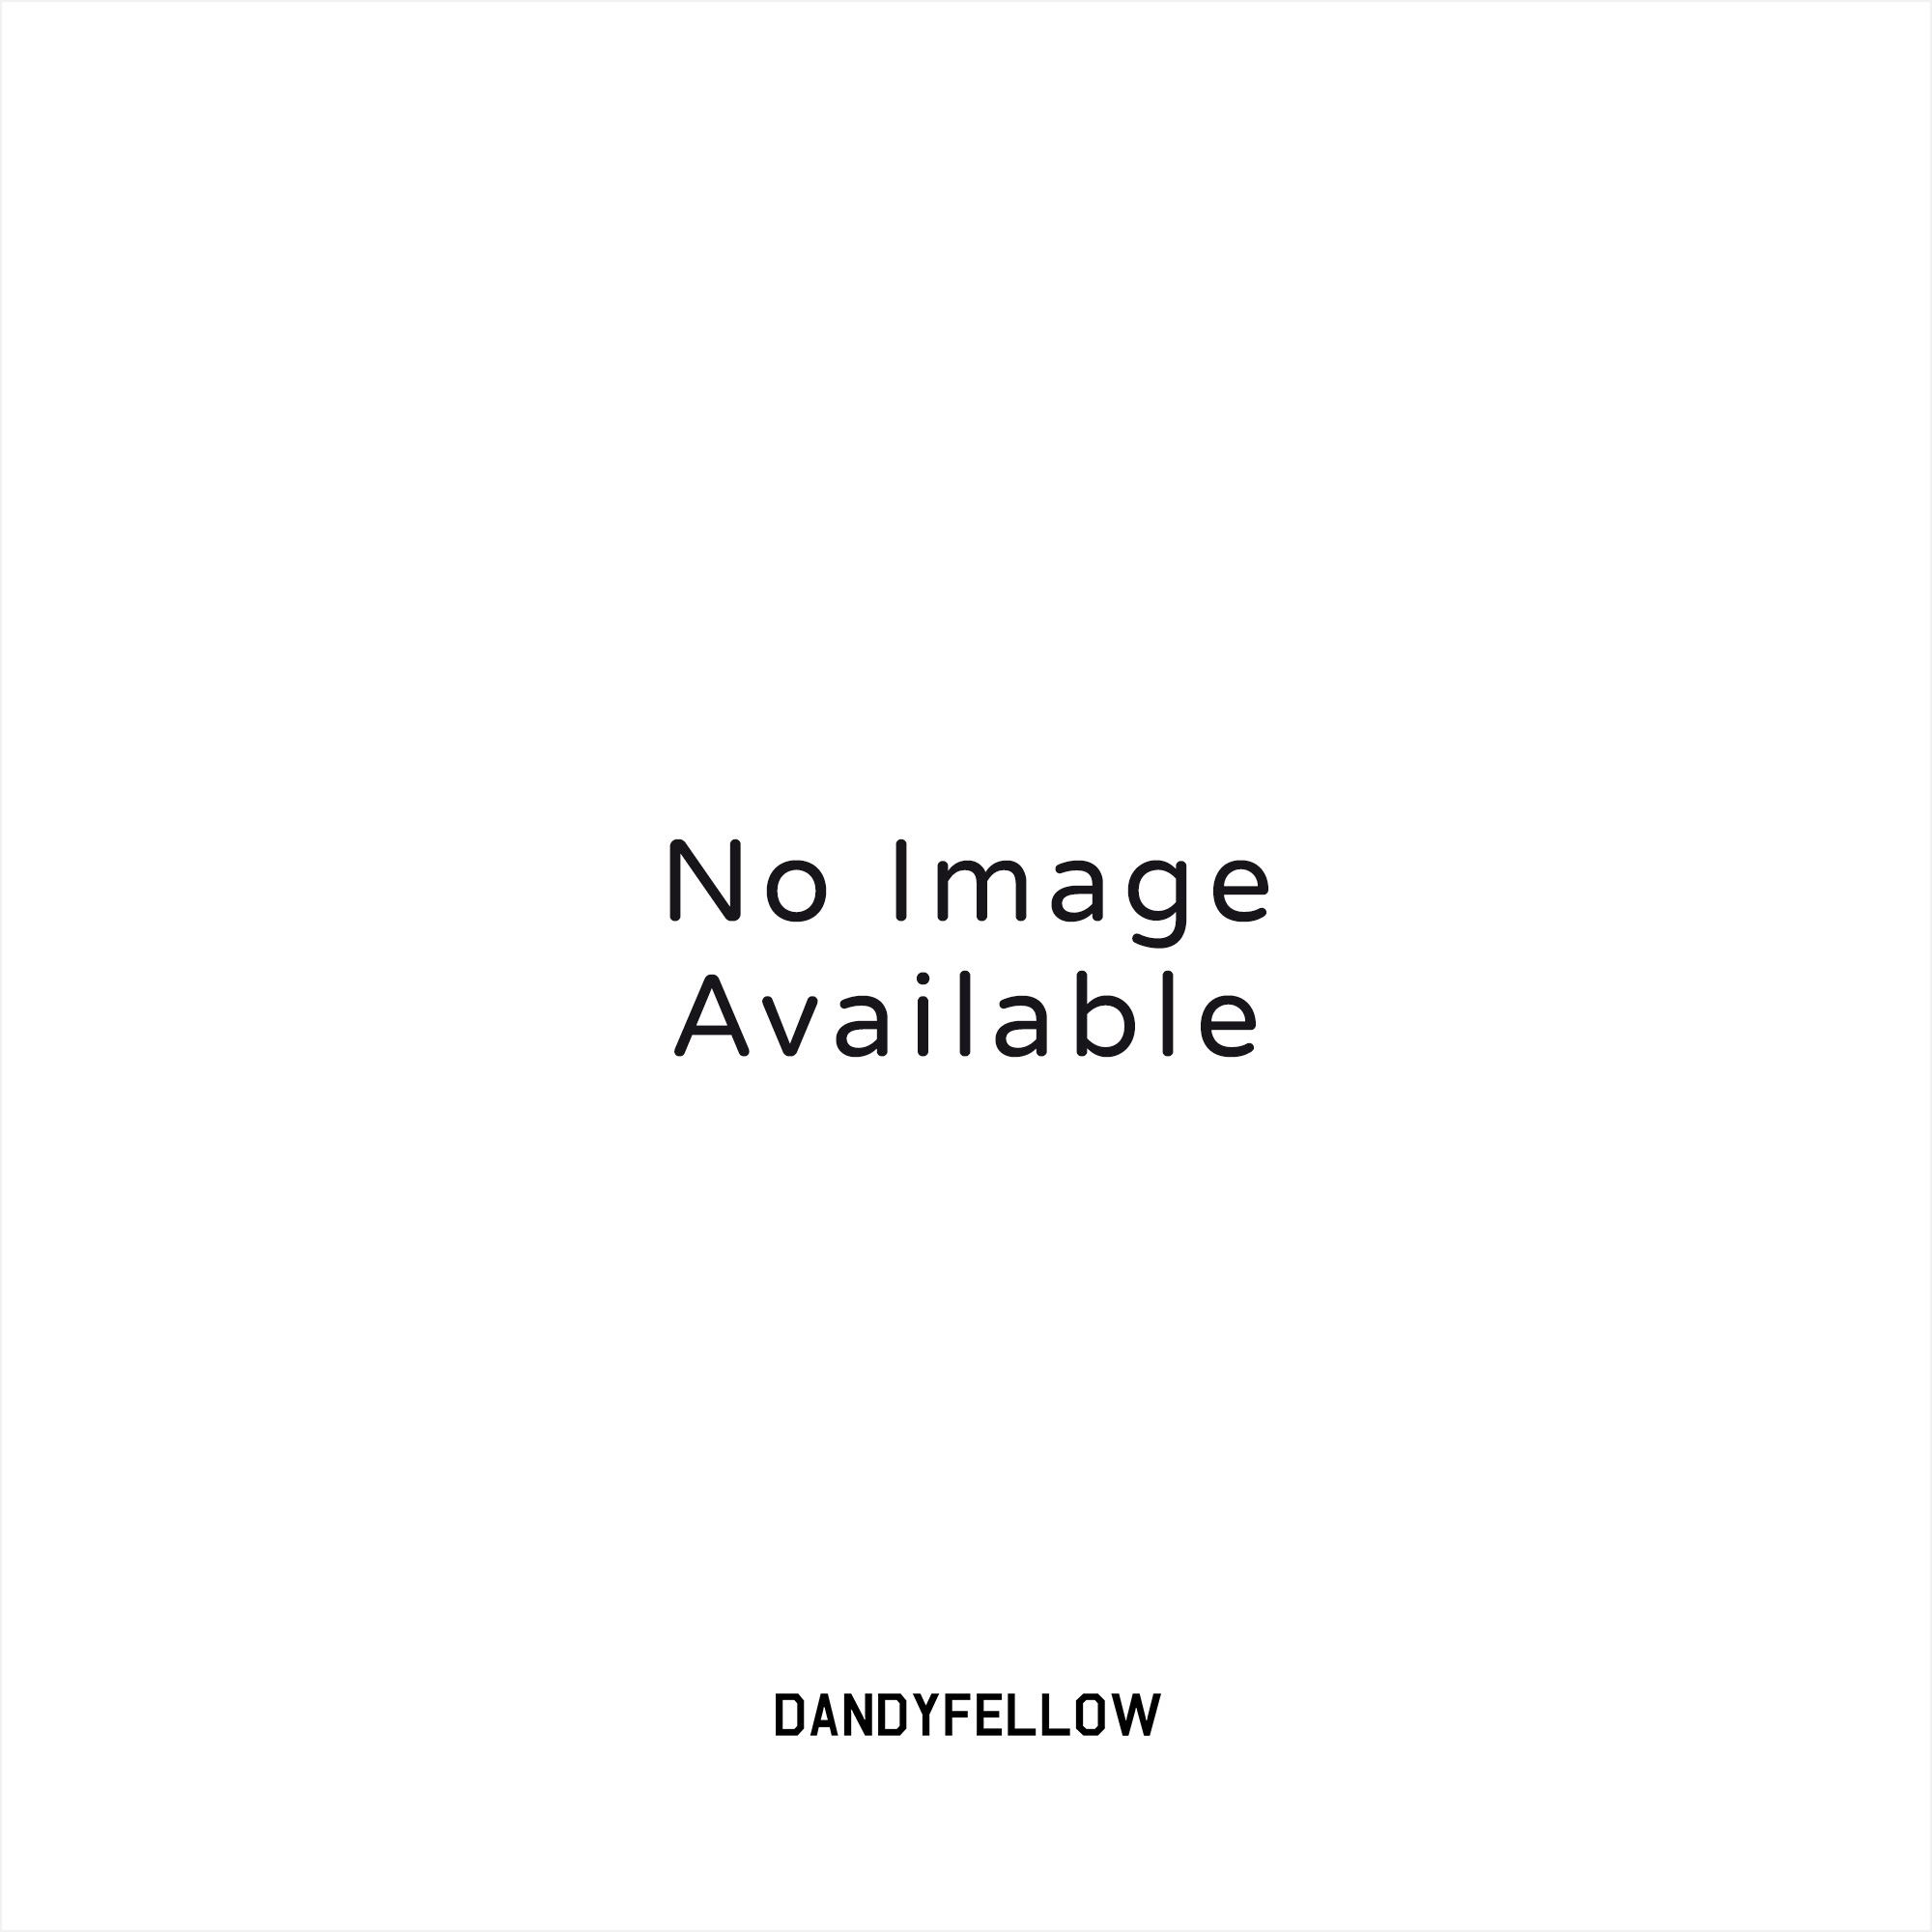 5c9f9d748 Fred Perry (White & Maroon) Single Tipped Polo Shirt M2-301 | Dandy ...